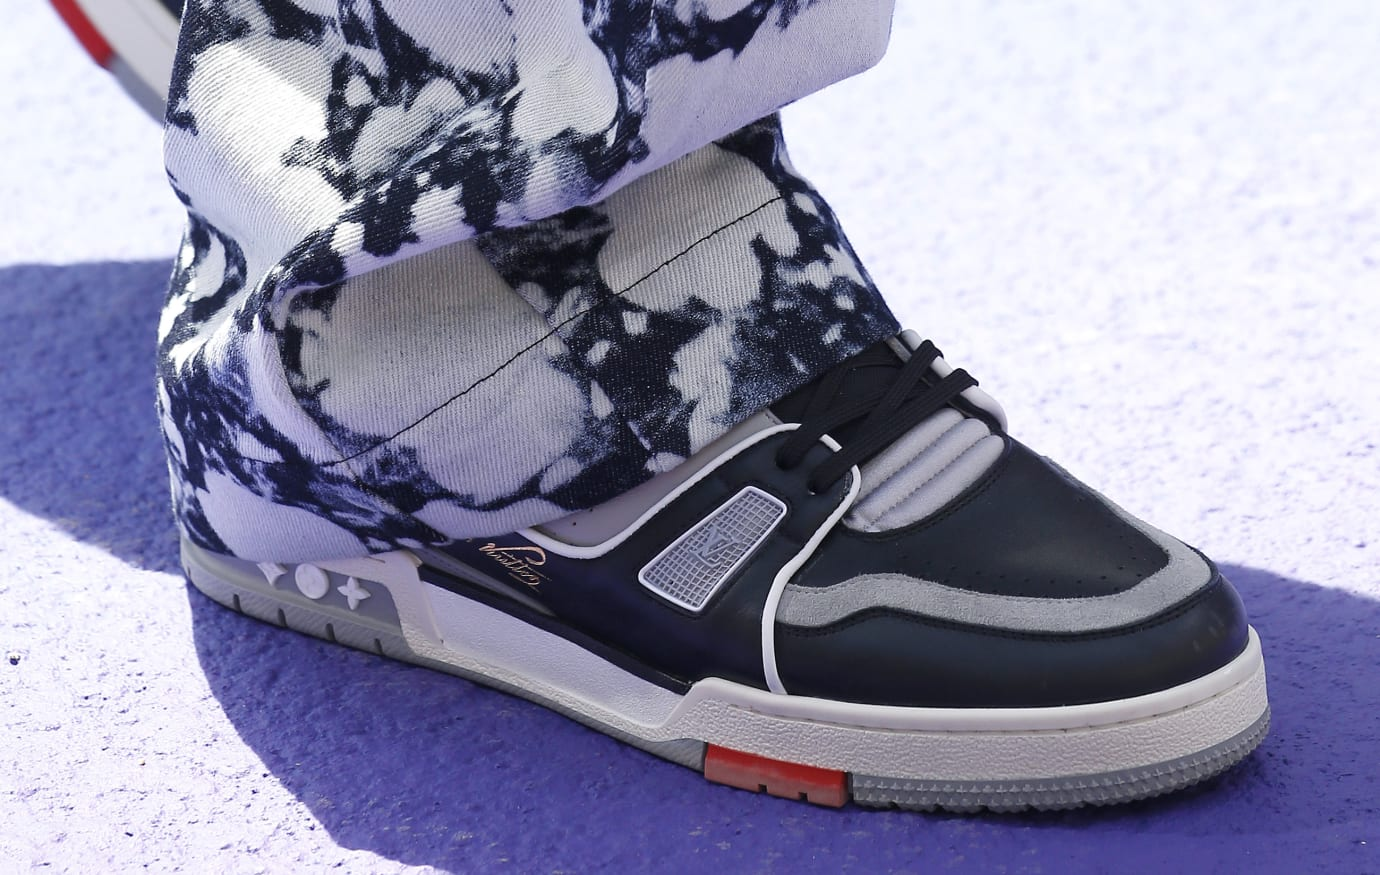 Virgil Abloh's Louis Vuitton Sneaker in Black/Grey